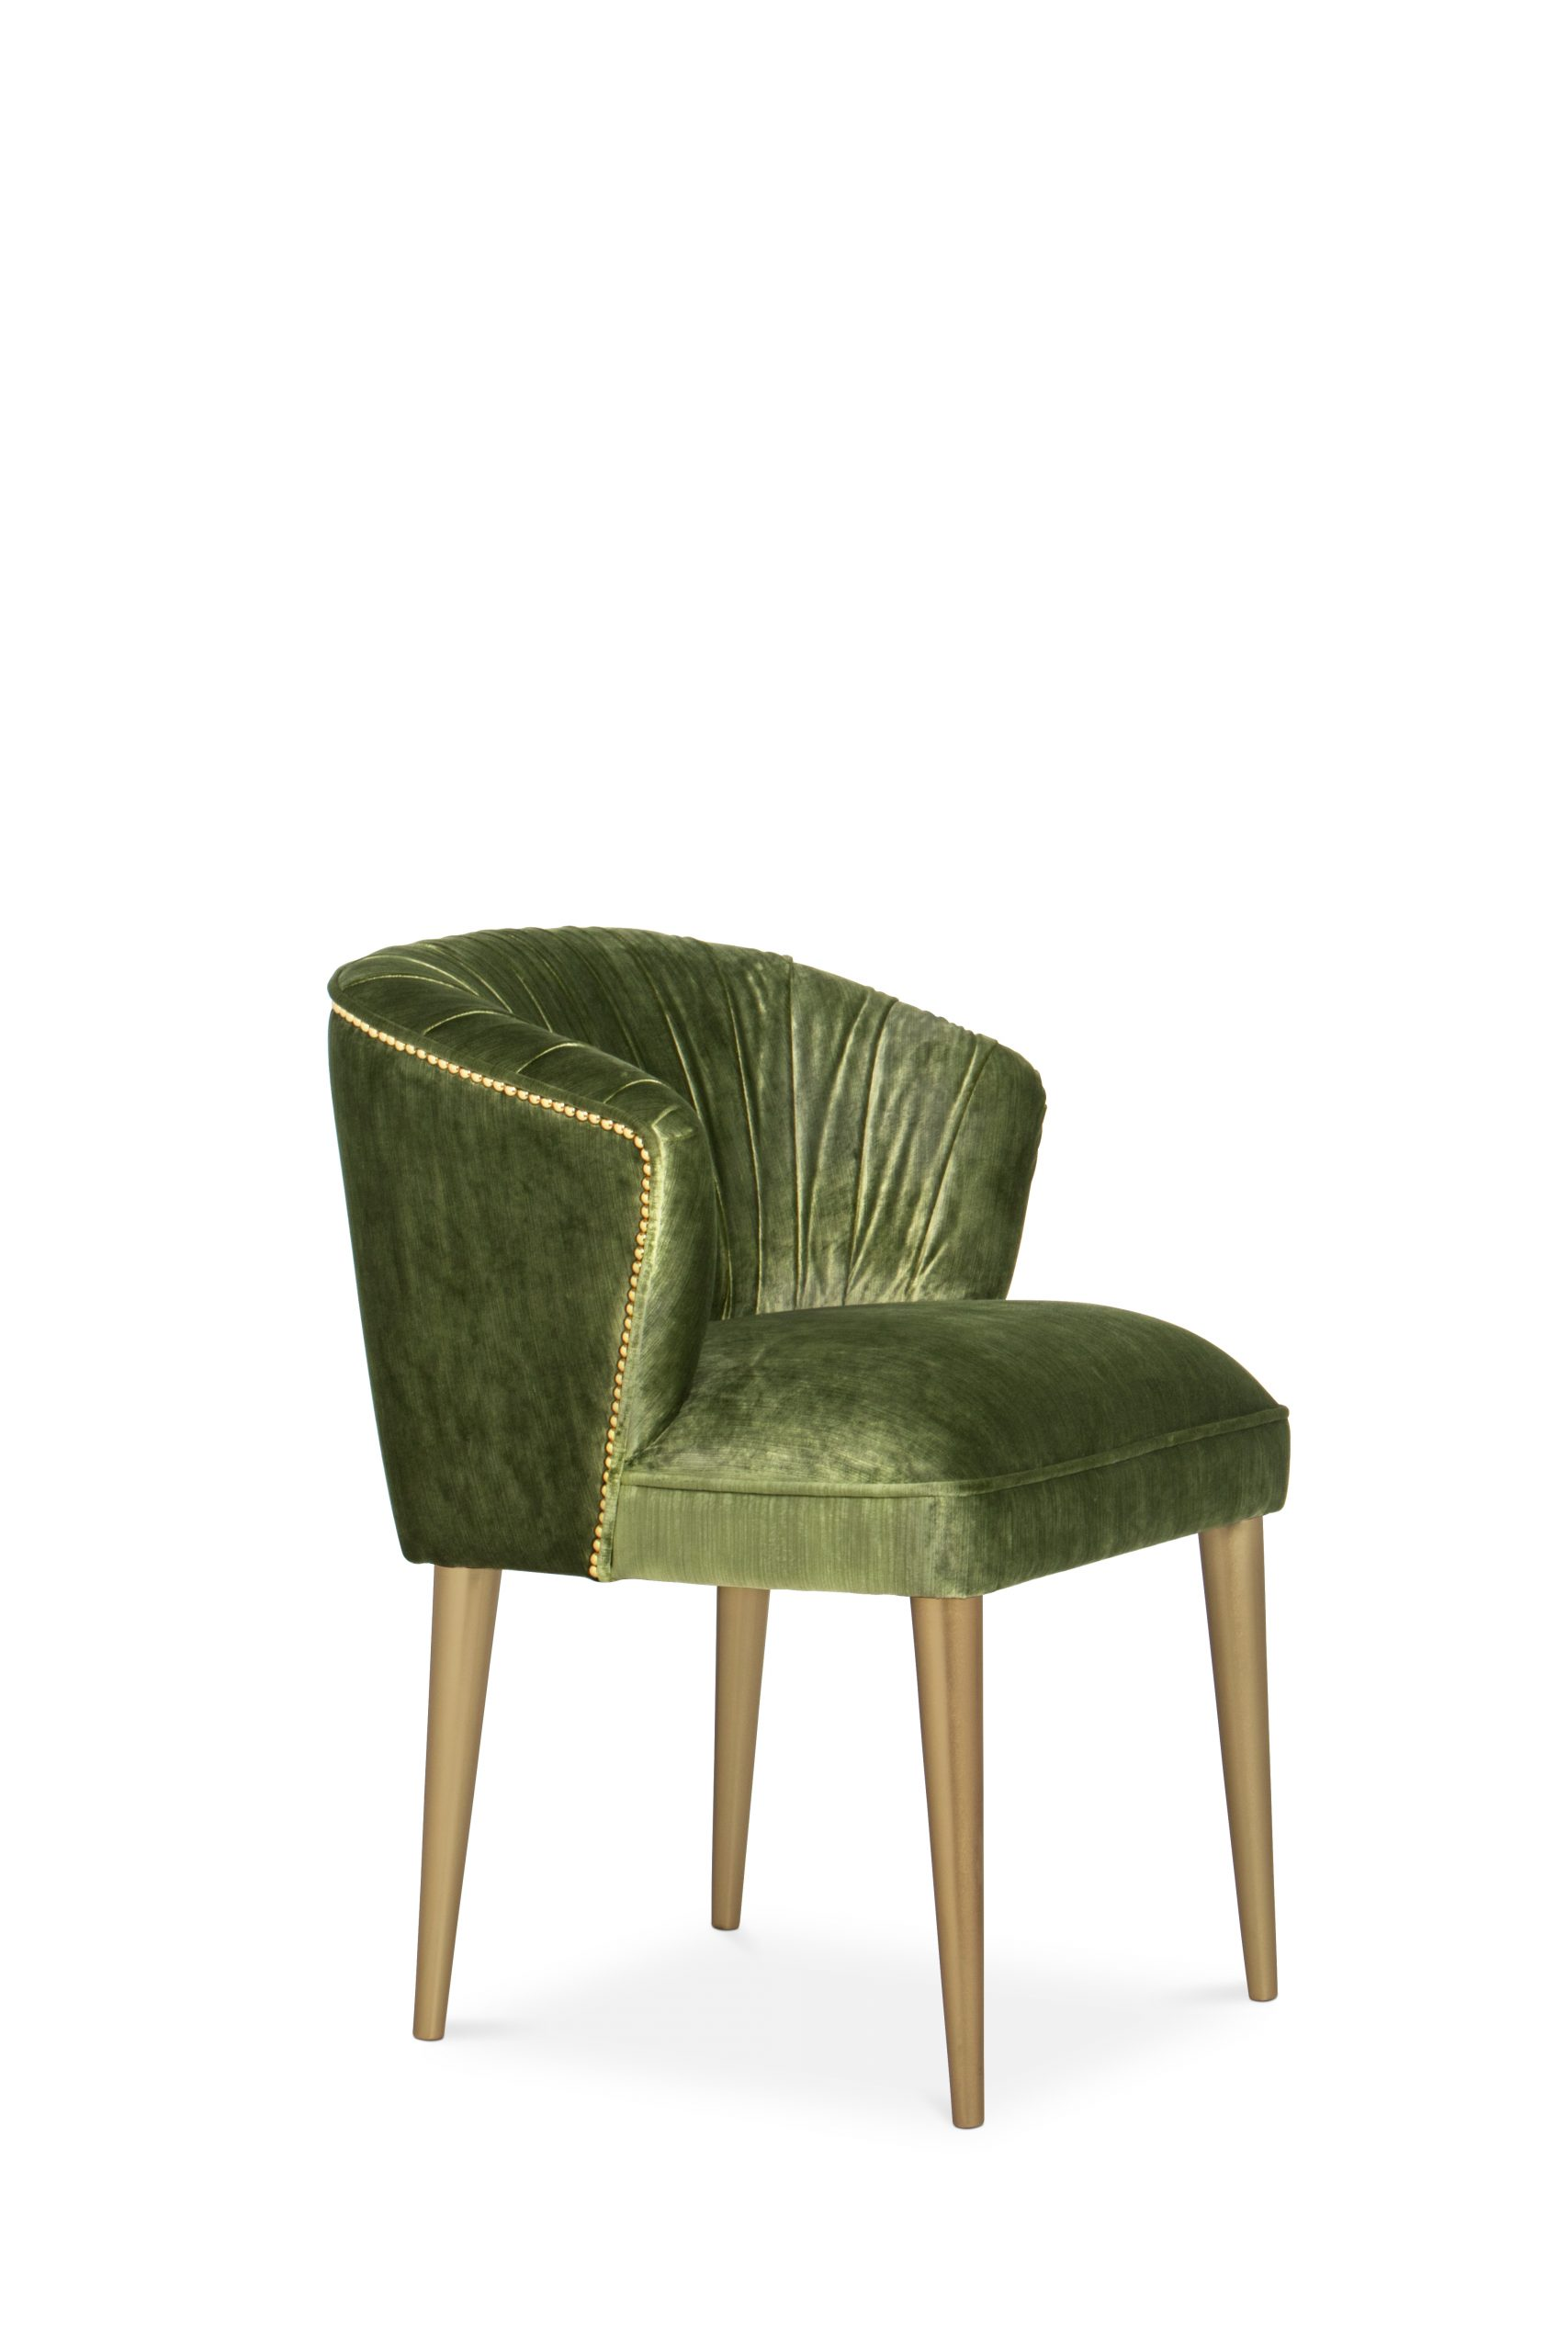 Modern Dining Chairs: Discover The Contemporary Super Nova Dining Room modern dining chairs Modern Dining Chairs: Discover The Contemporary Super Nova Dining Room BB nuka dining 2 scaled